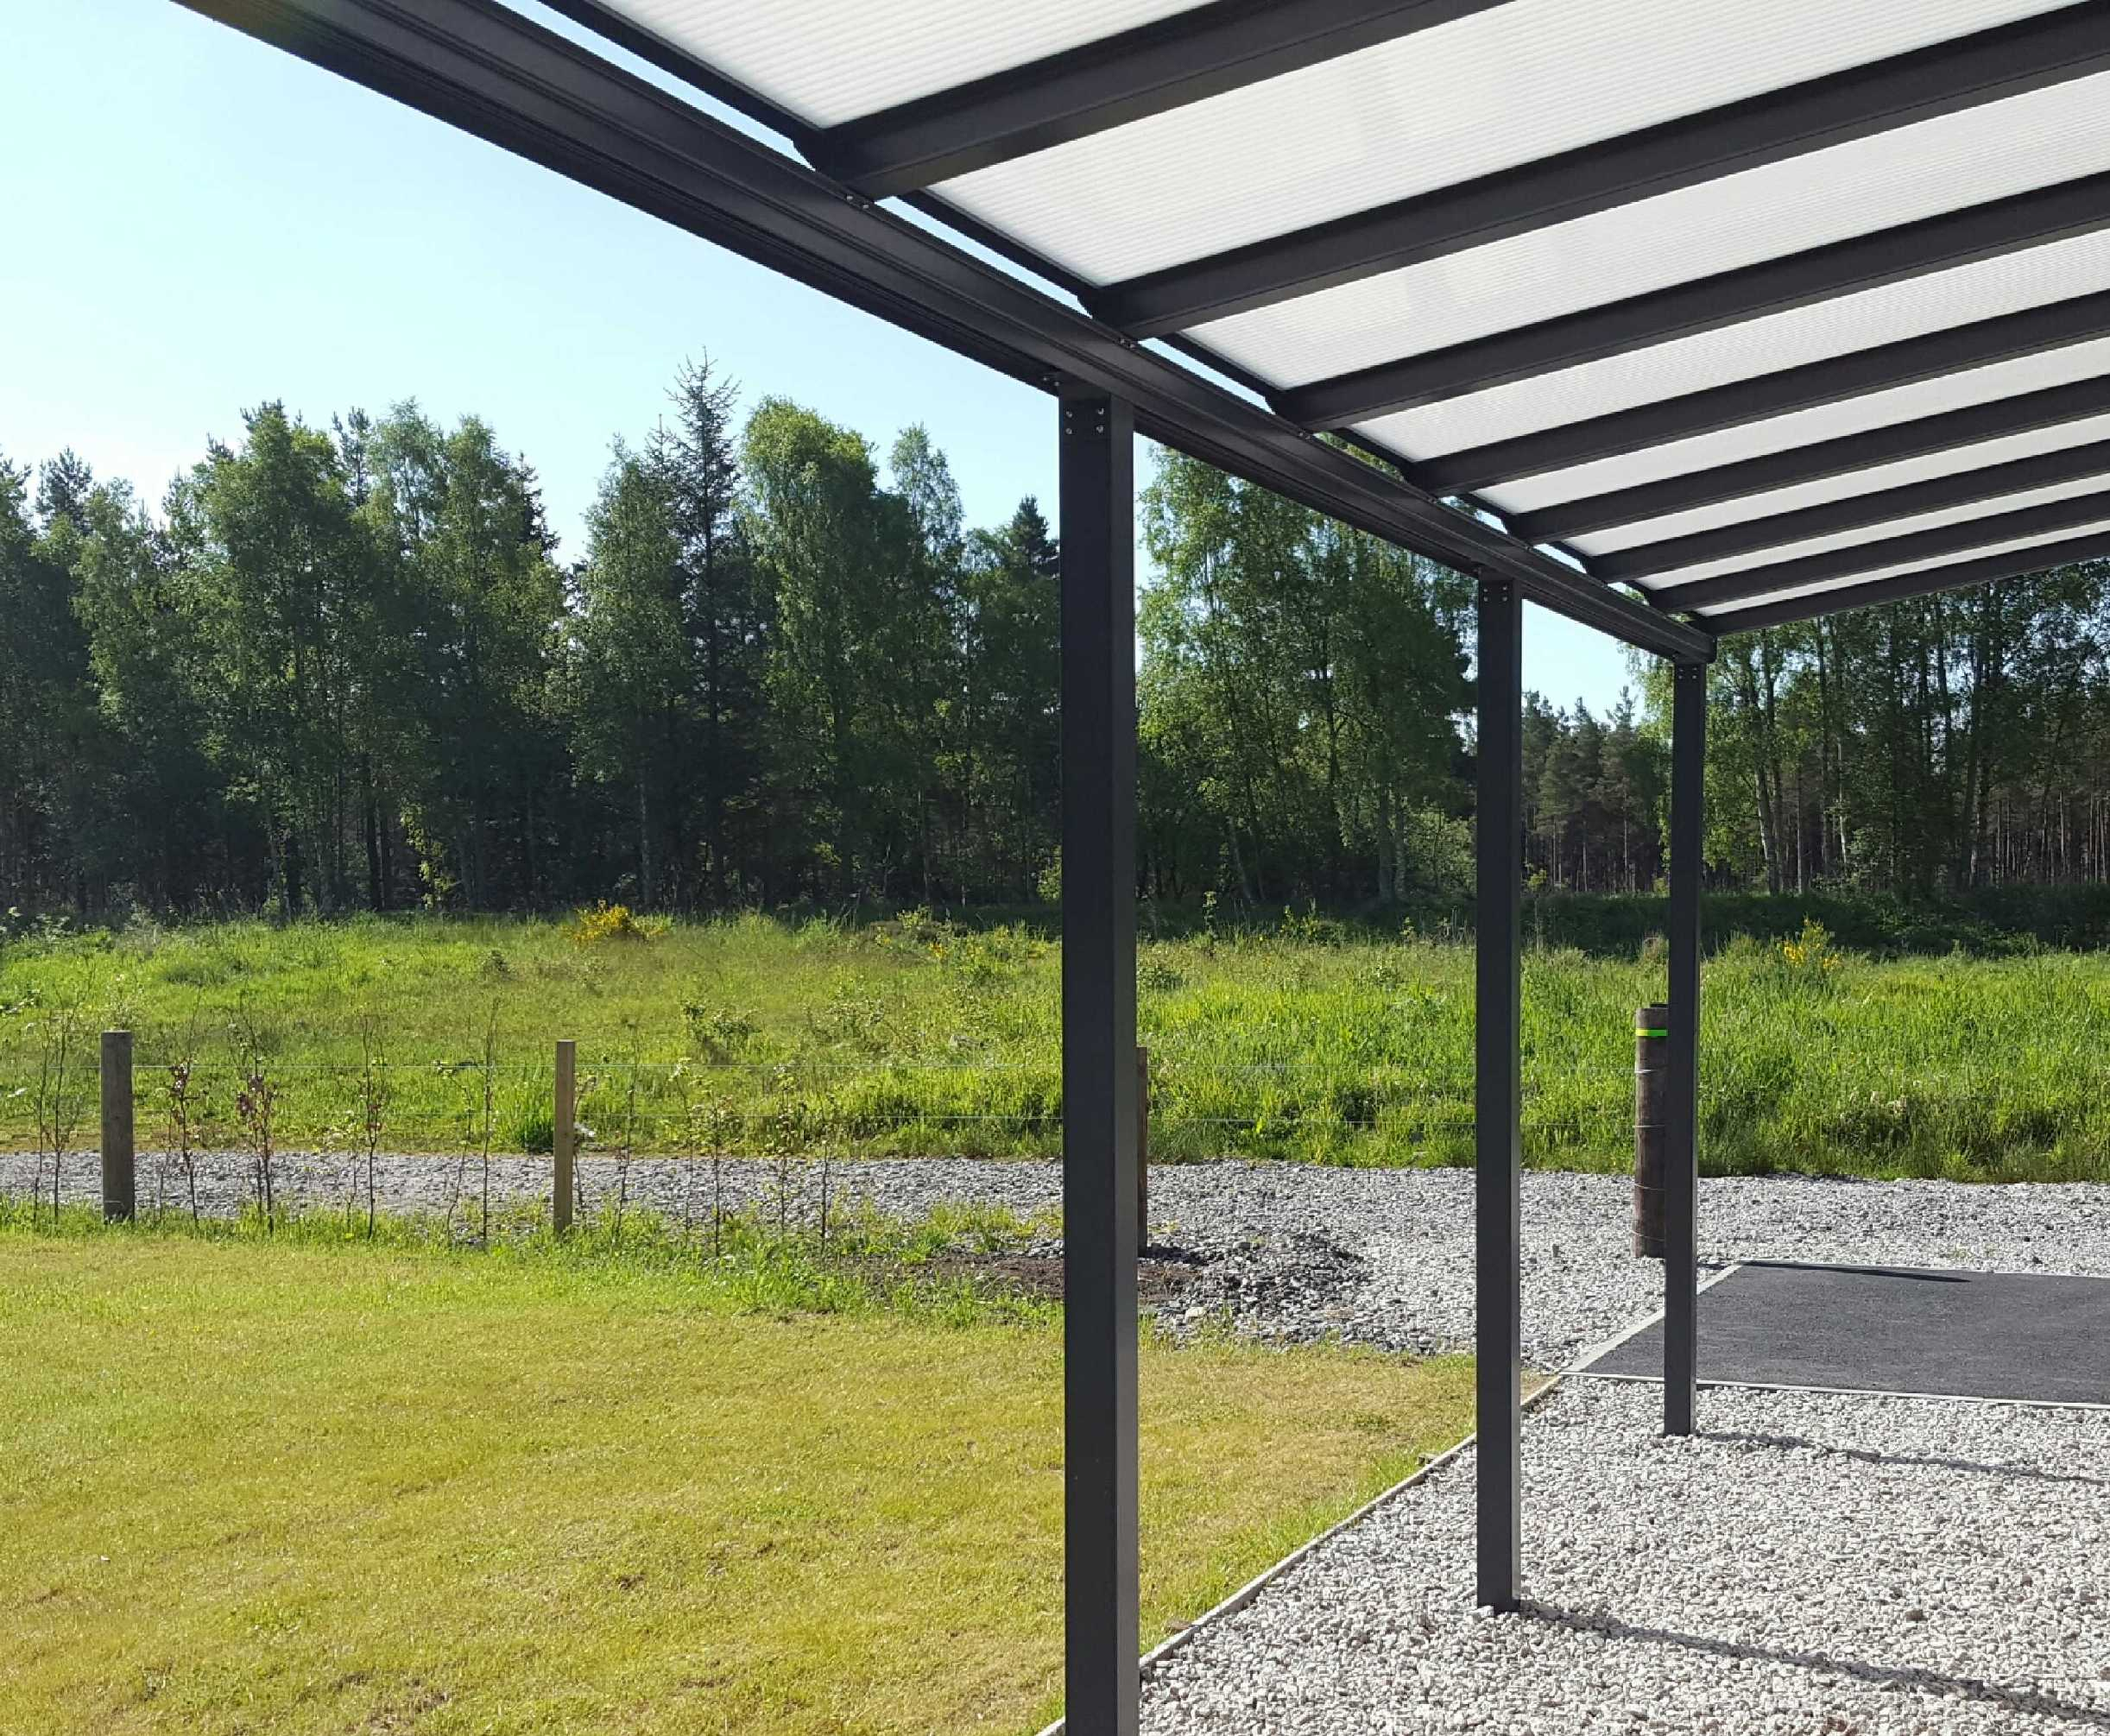 Omega Smart Lean-To Canopy, Anthracite Grey, 16mm Polycarbonate Glazing - 12.0m (W) x 2.5m (P), (5) Supporting Posts